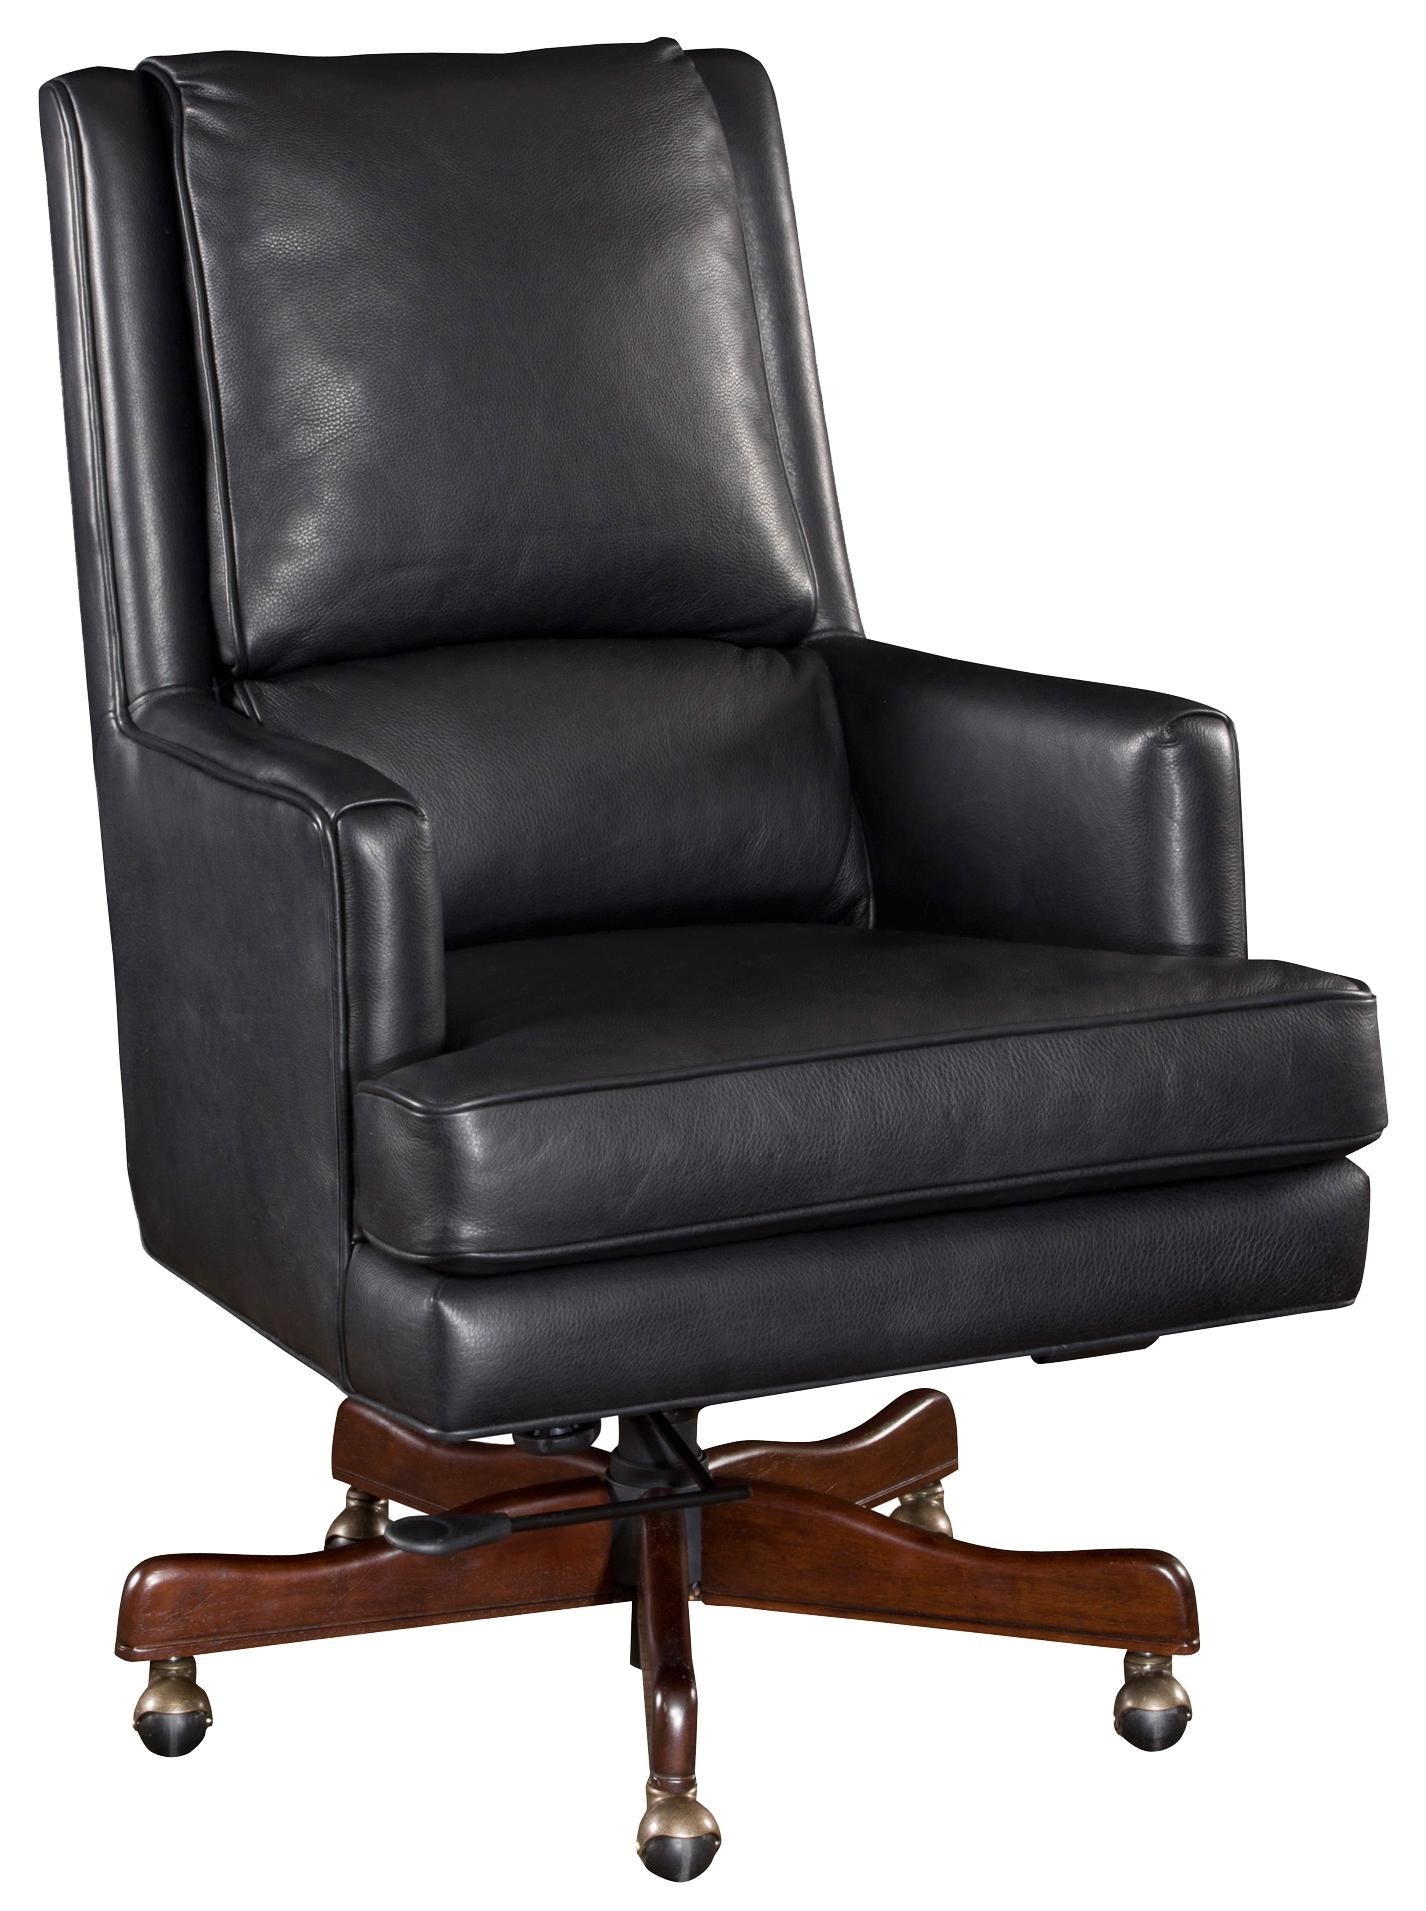 leather desk chair. Hooker Furniture Executive SeatingLeather Desk Chair Leather H